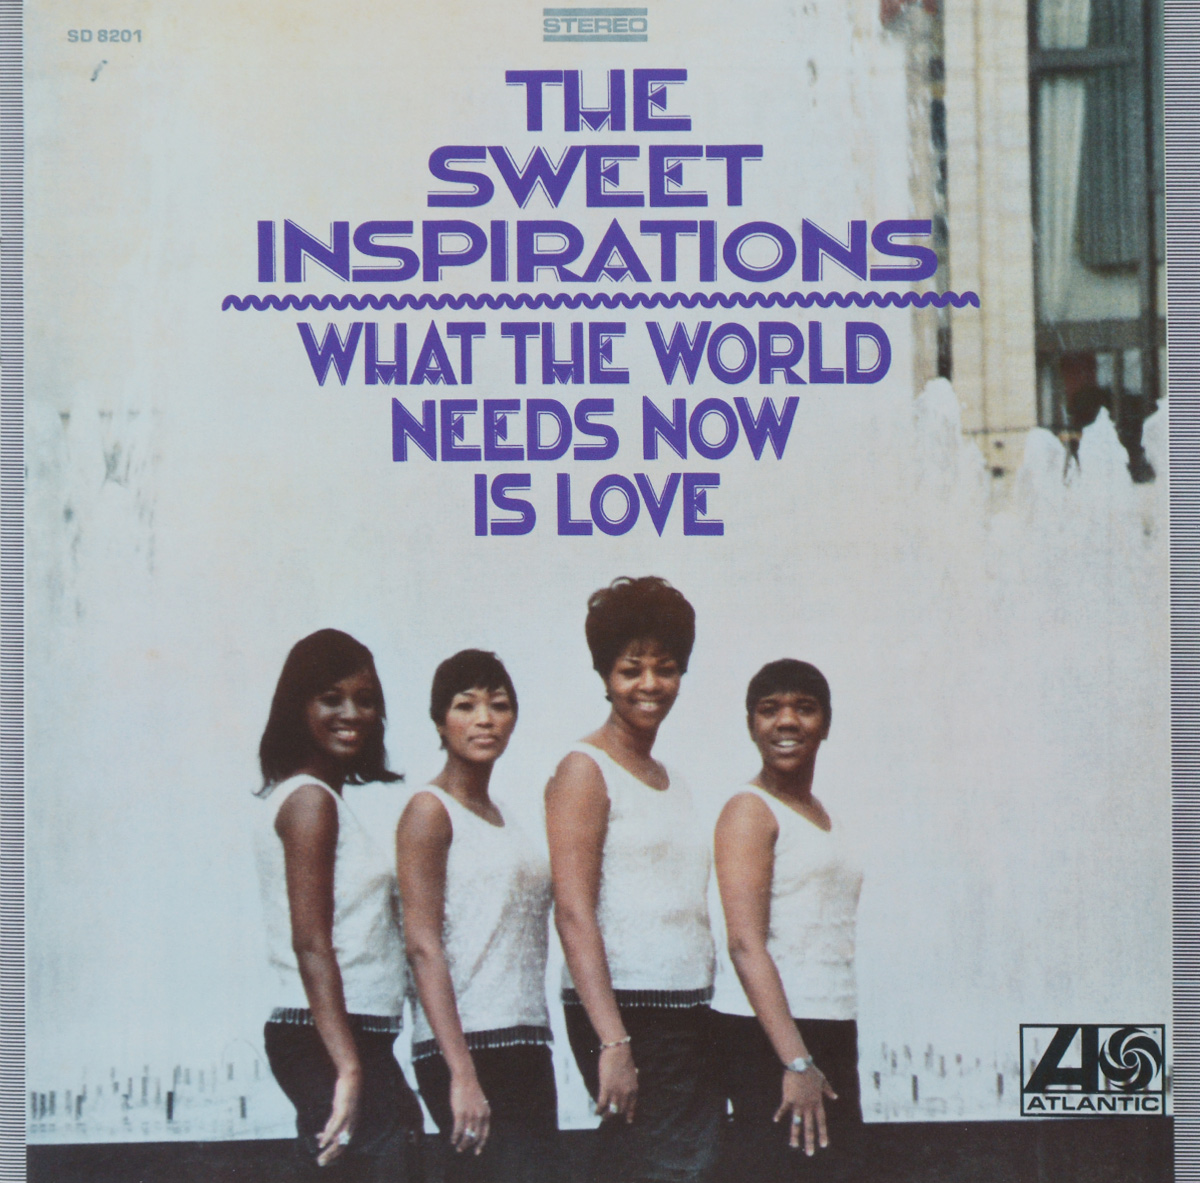 The Sweet Inspirations. What The World Needs Now Is Love